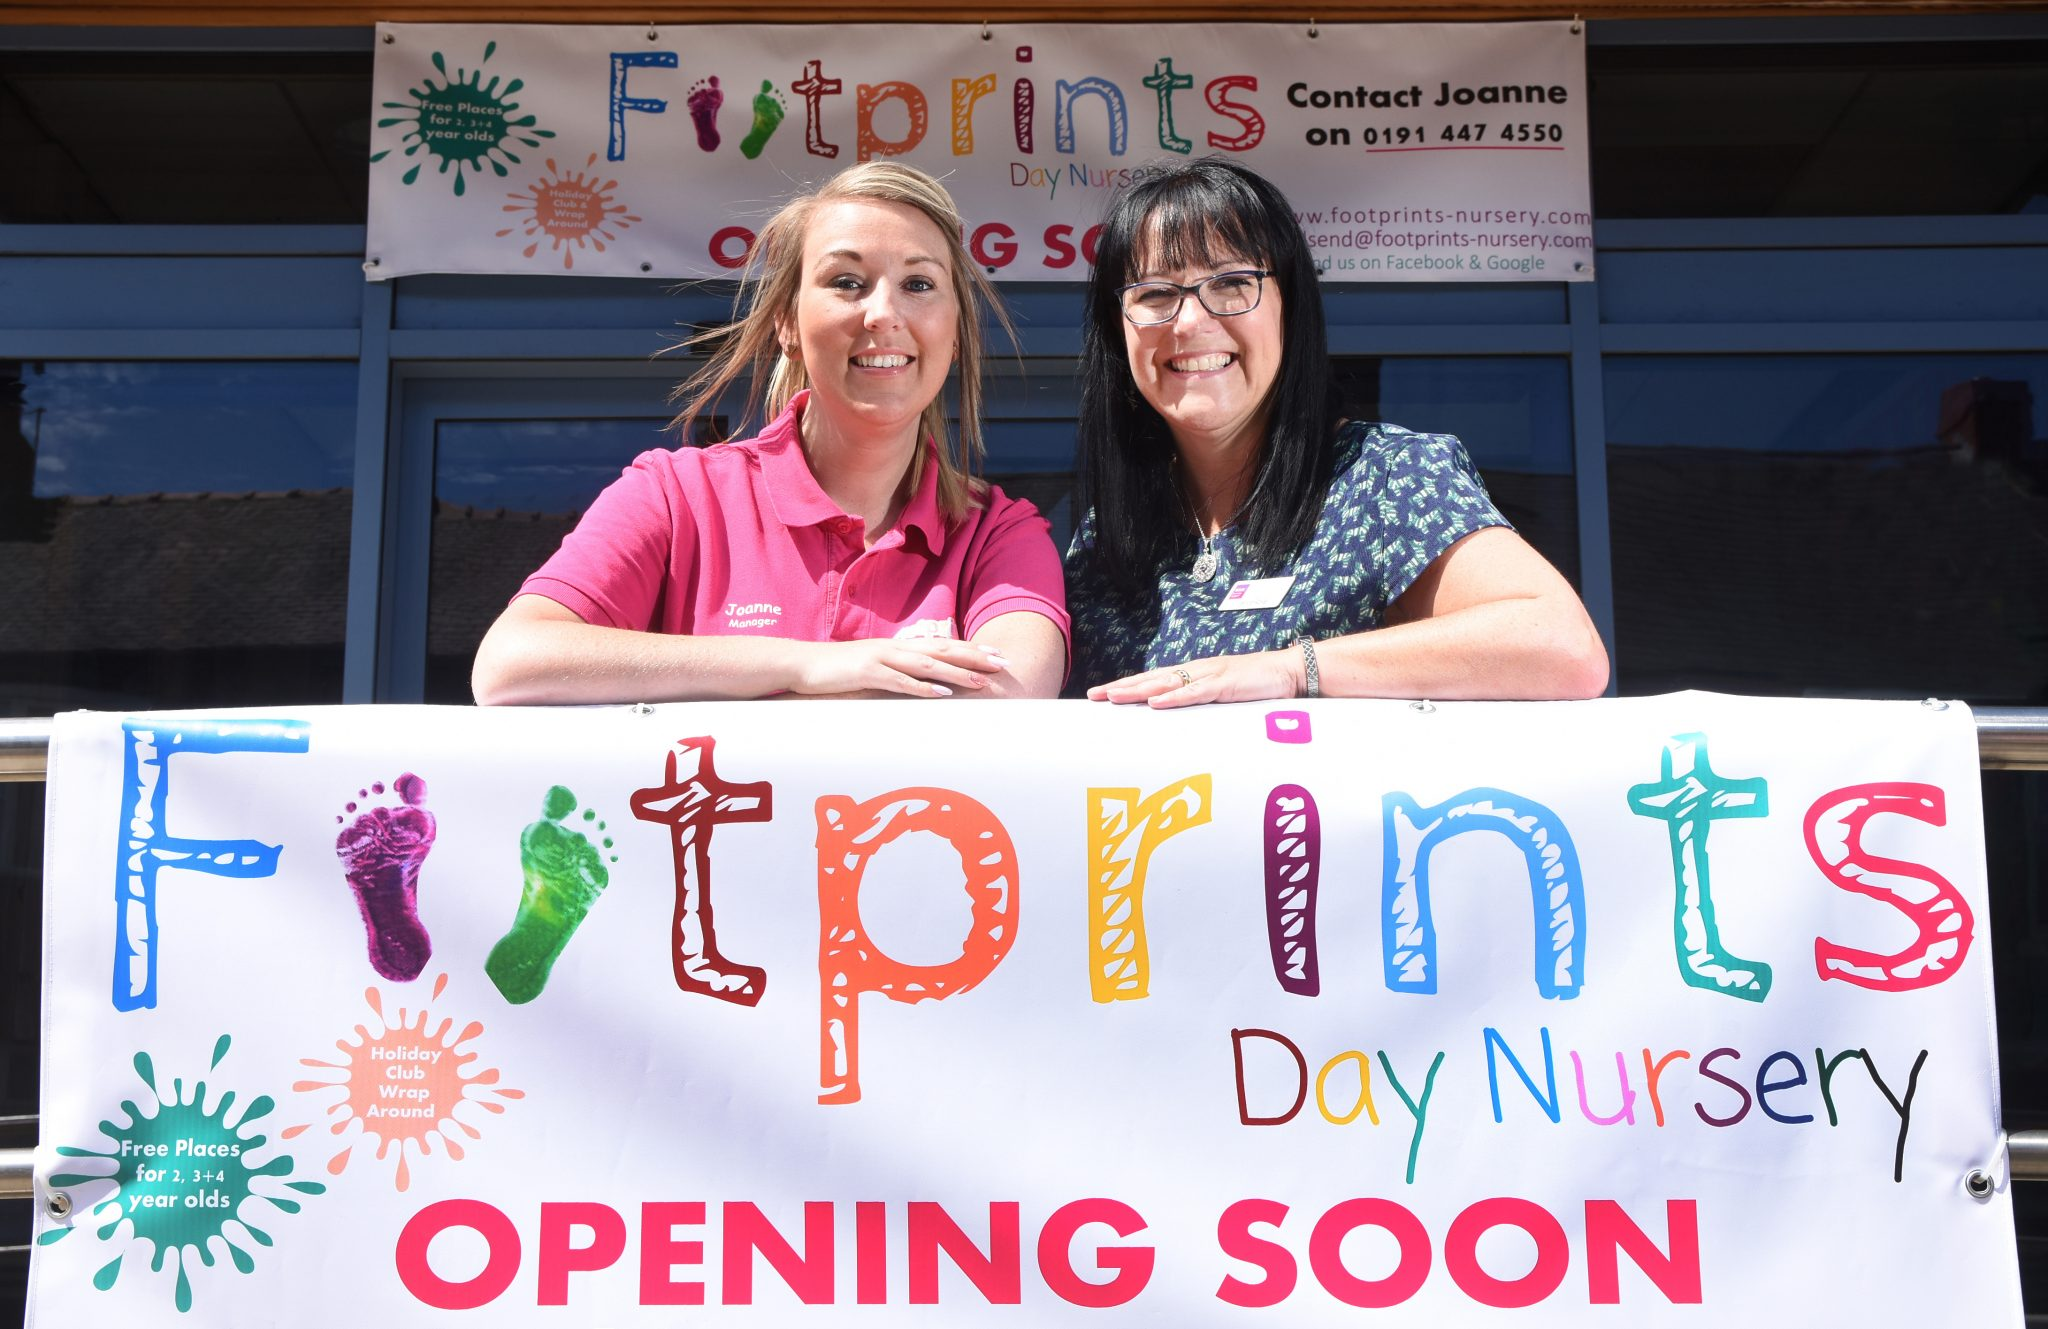 Footprints Nursery Expands